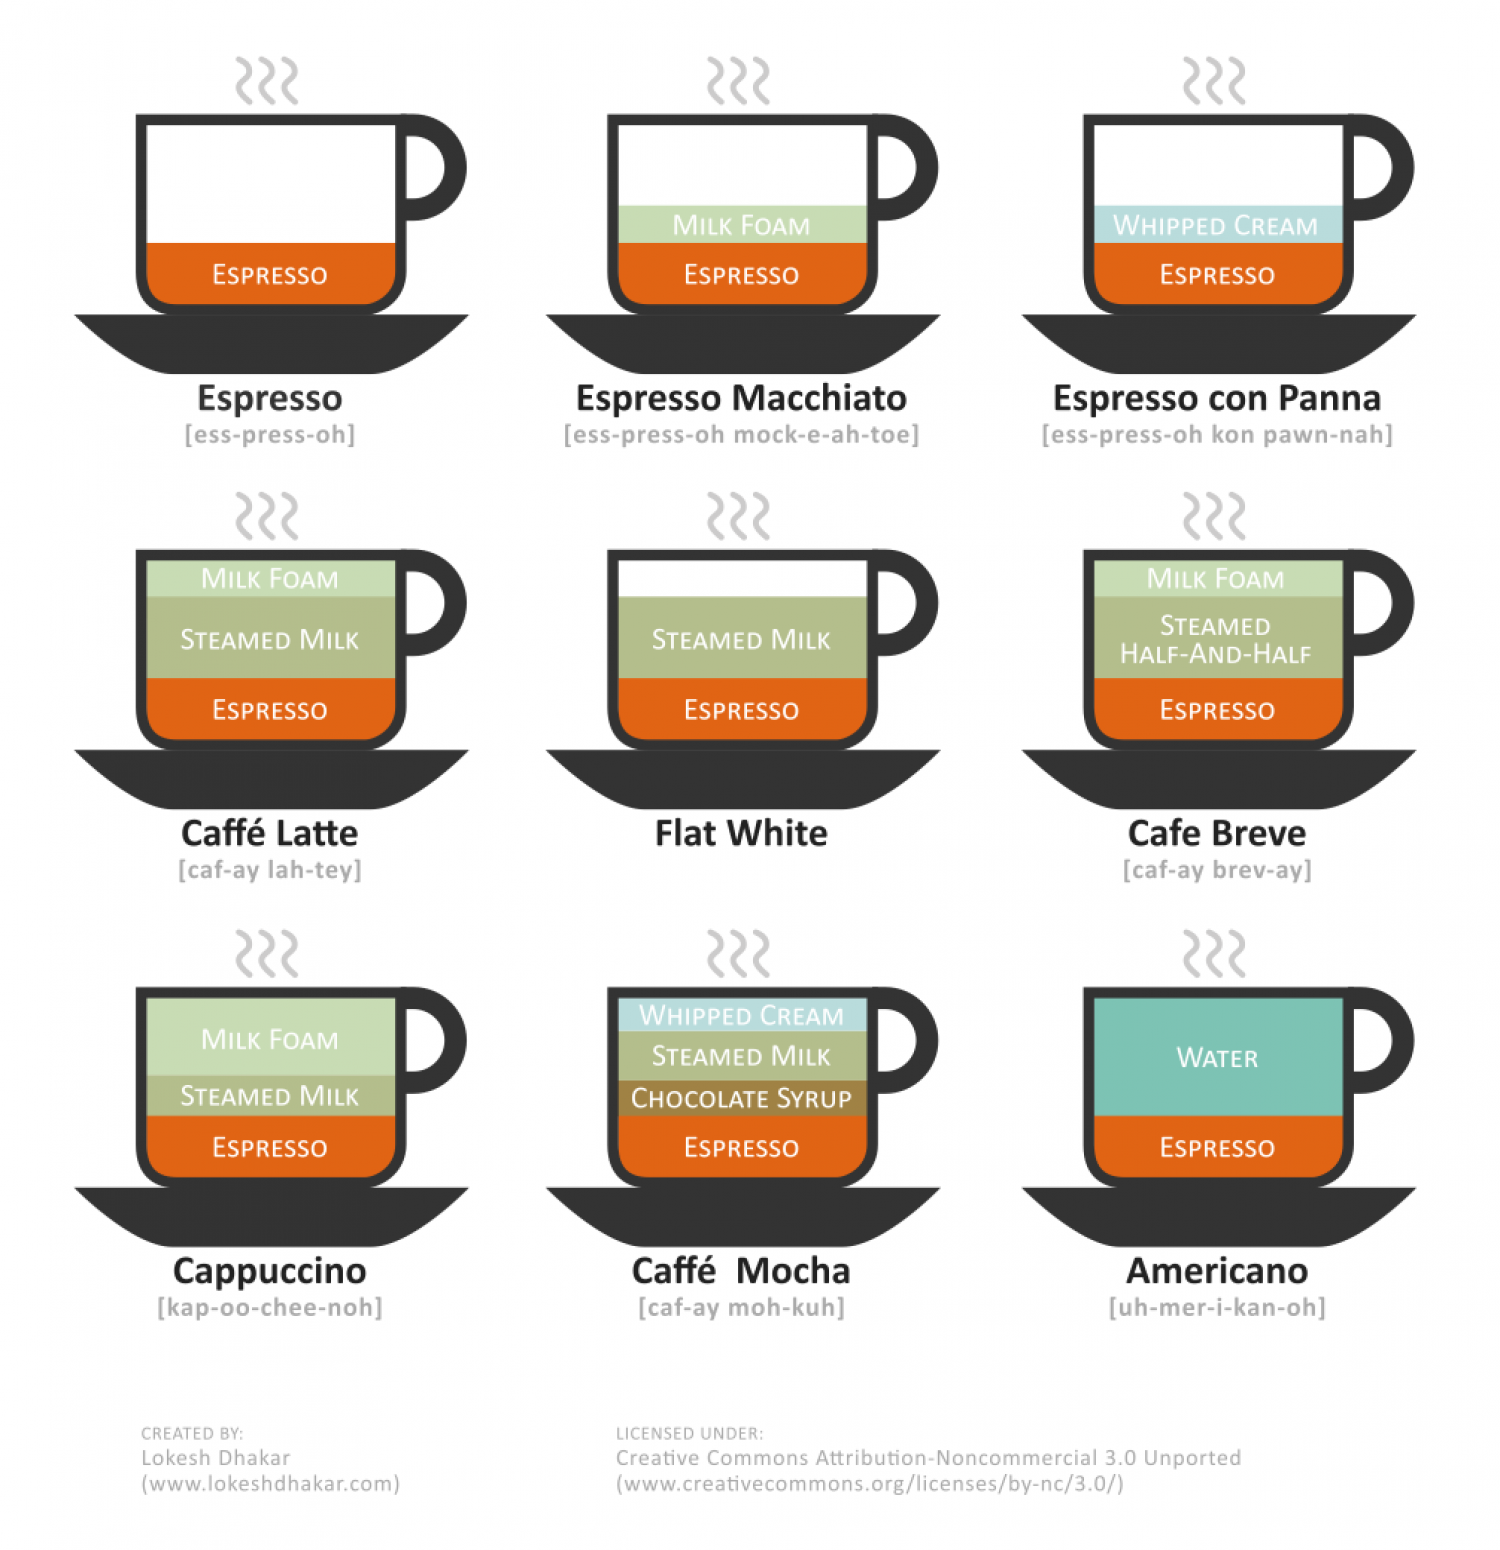 Coffee vs. Tea: Is One Better for Your Health?